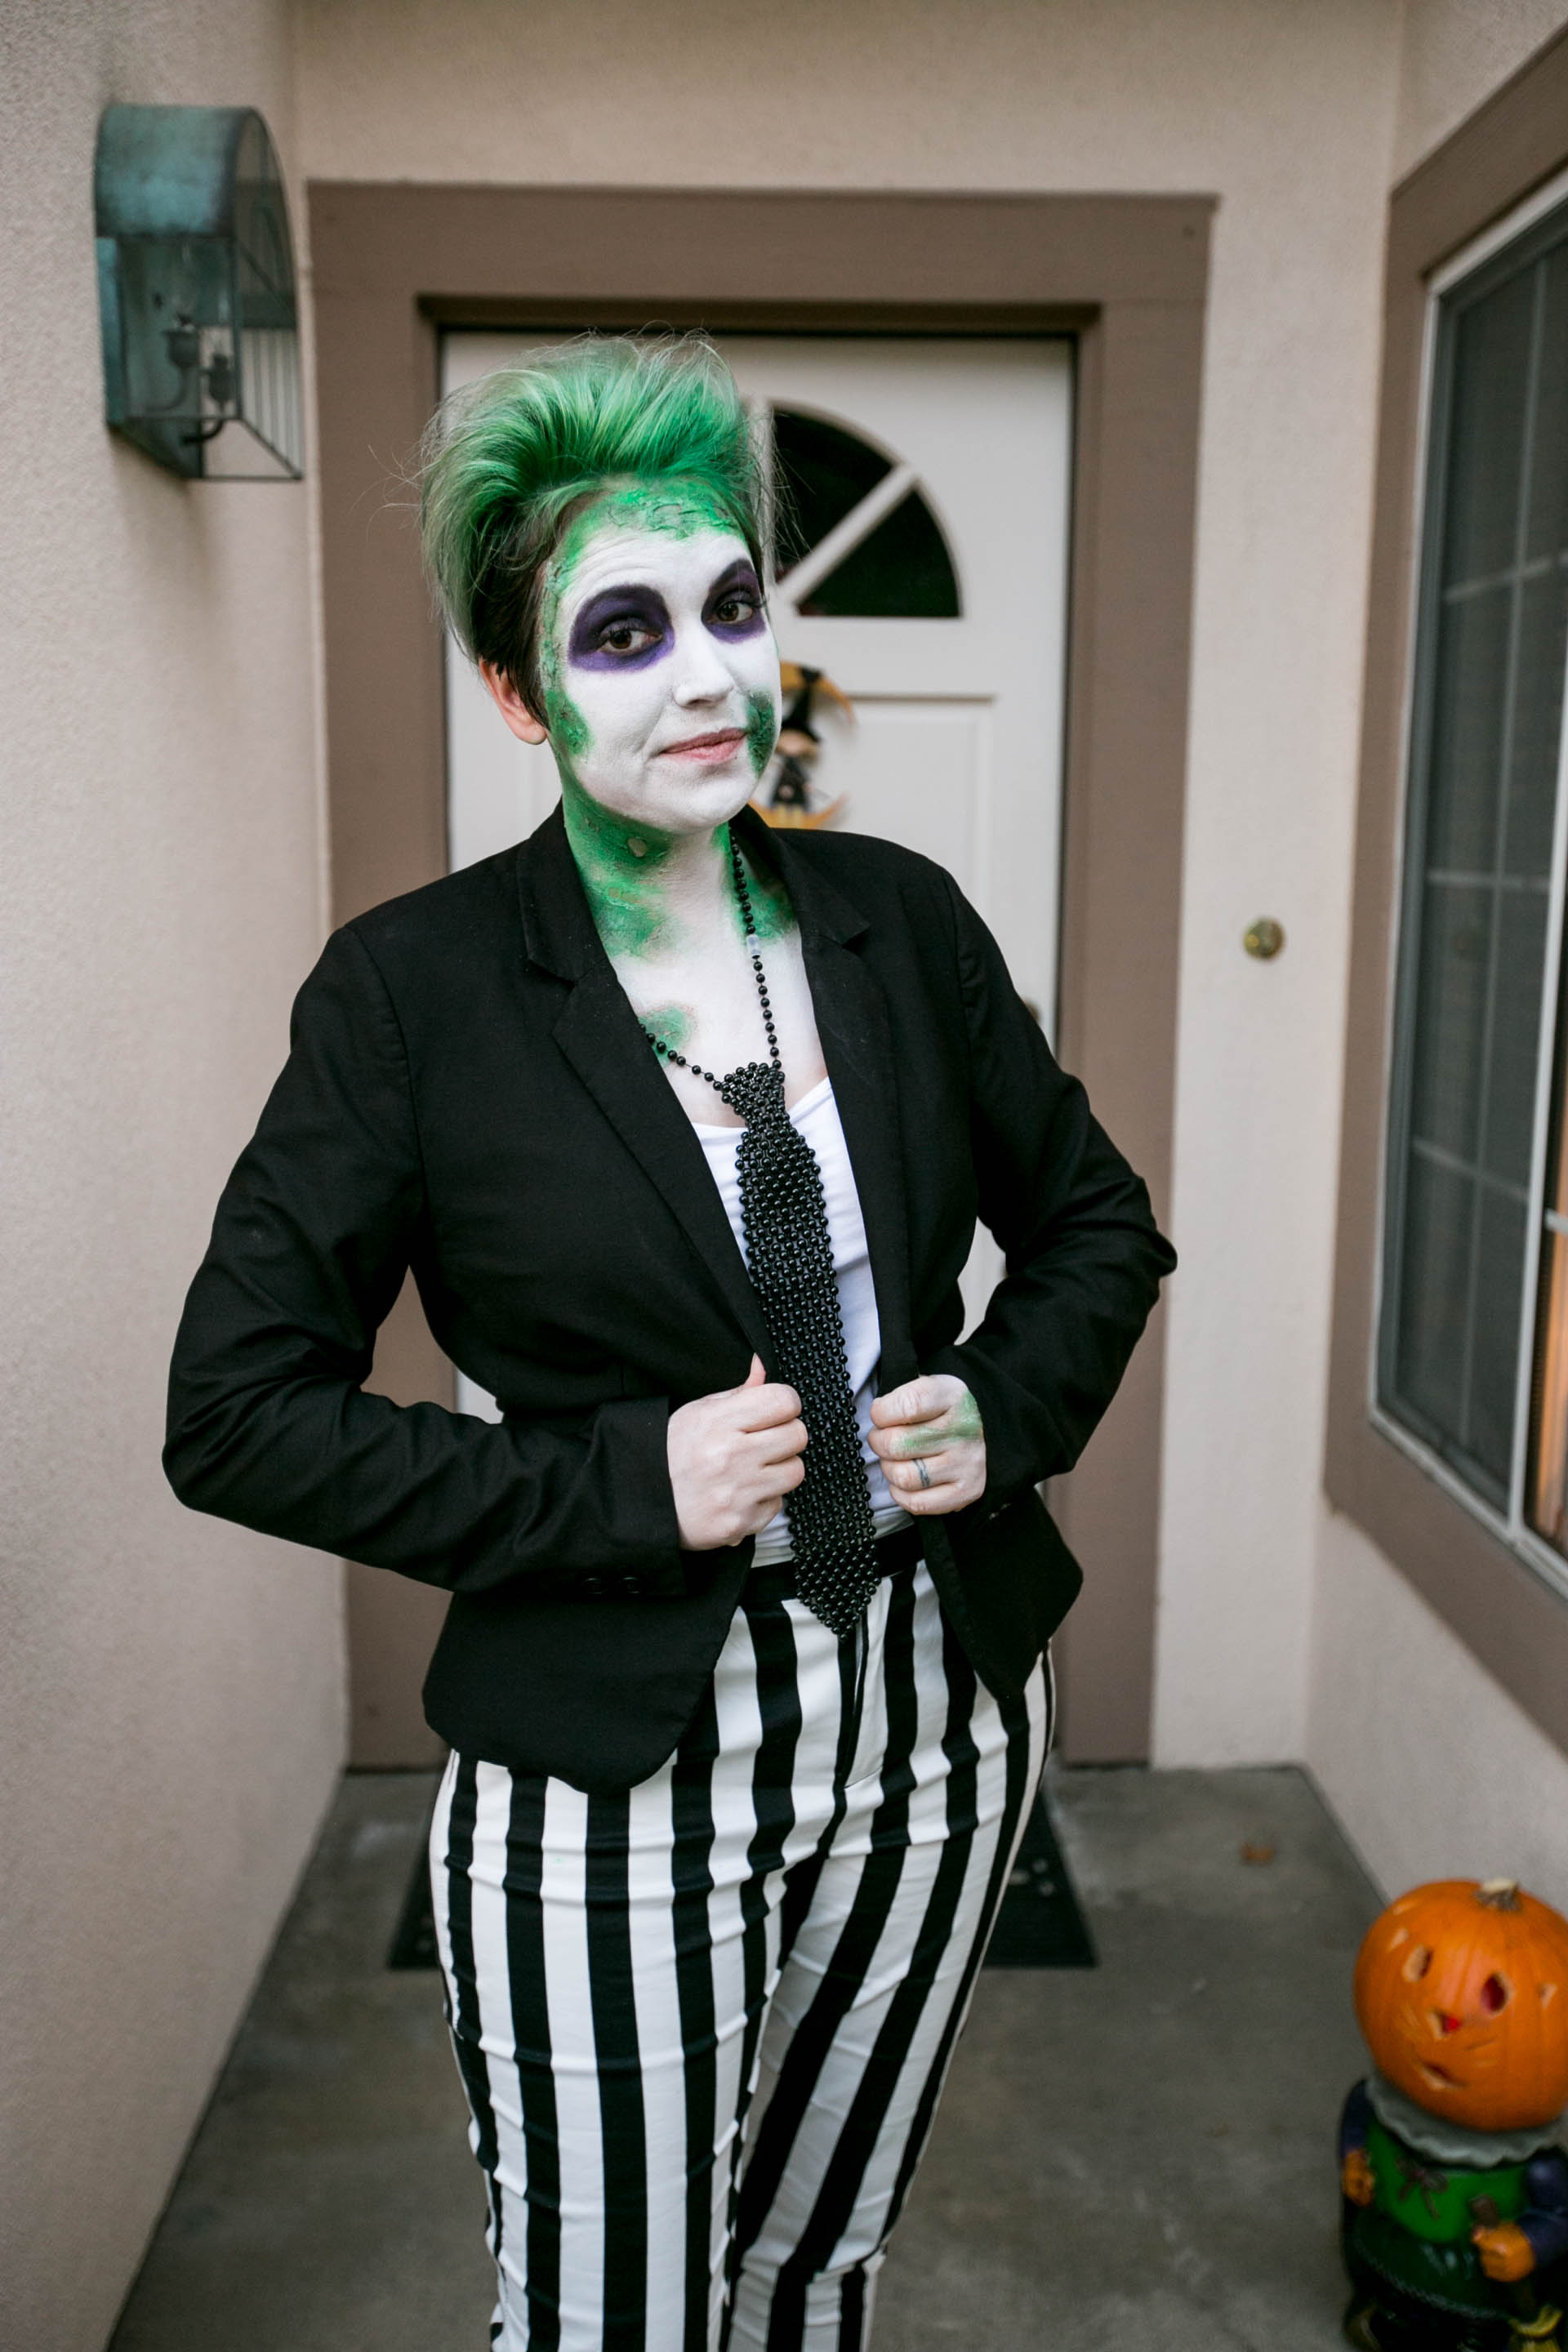 Beetlejuice Beetlejuice Beetlejuice Picture Something Productions